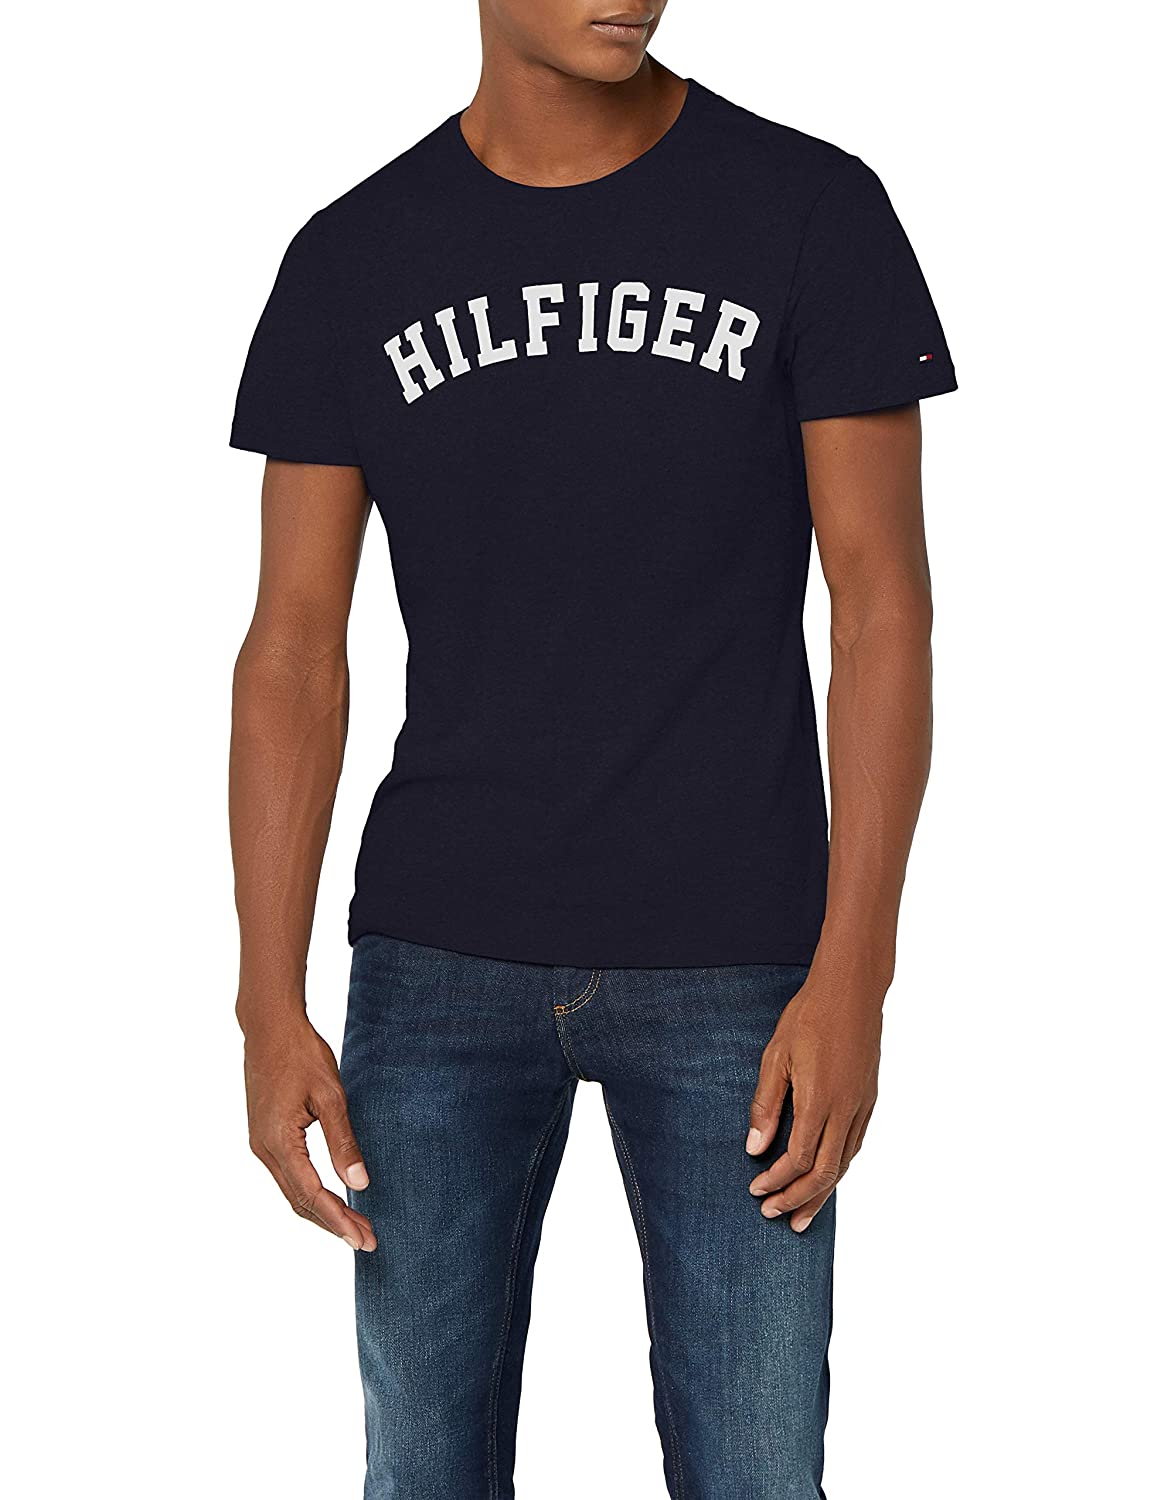 a52c3143 Tommy Hilfiger Men's SS Tee Logo T-shirt: Tommy Hilfiger: Amazon.co.uk:  Clothing